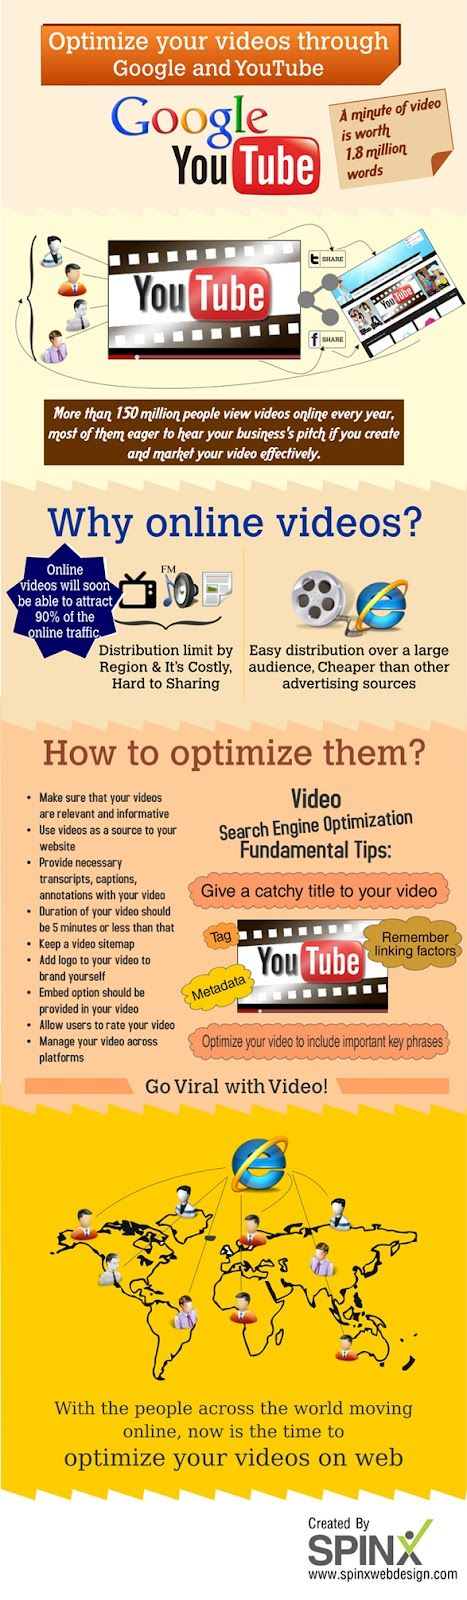 Optimize Your Videos Trough Google and YouTube #Infographic. Video Is A Must in Marketing, Advertising And Communications